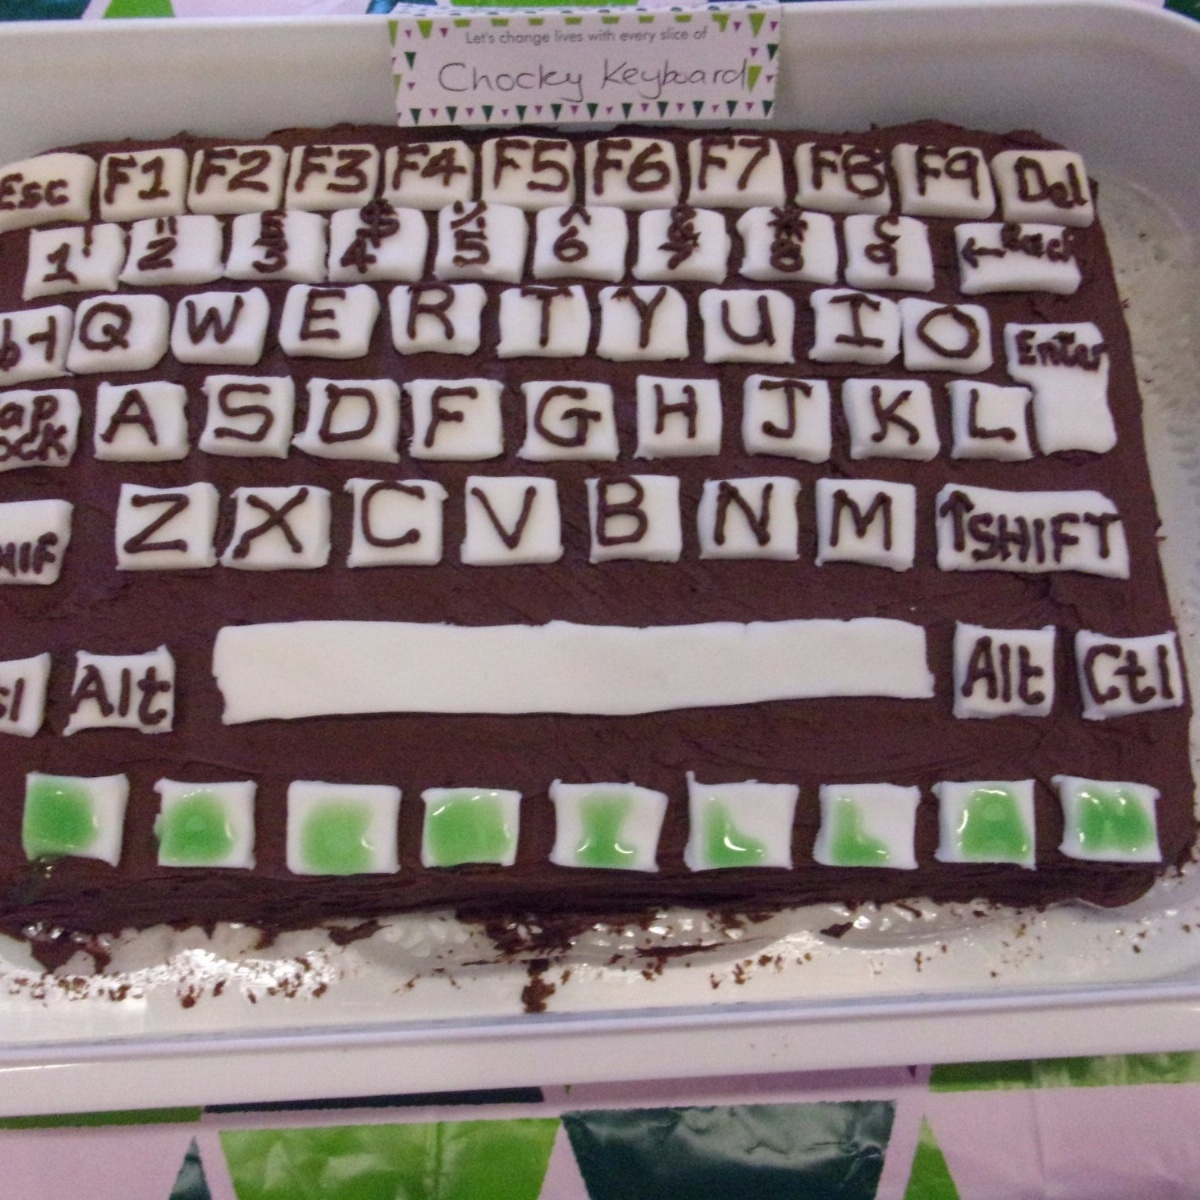 Keyboard Kuchen Alexander Hosea Primary School Macmillan Coffee Morning 13 10 17